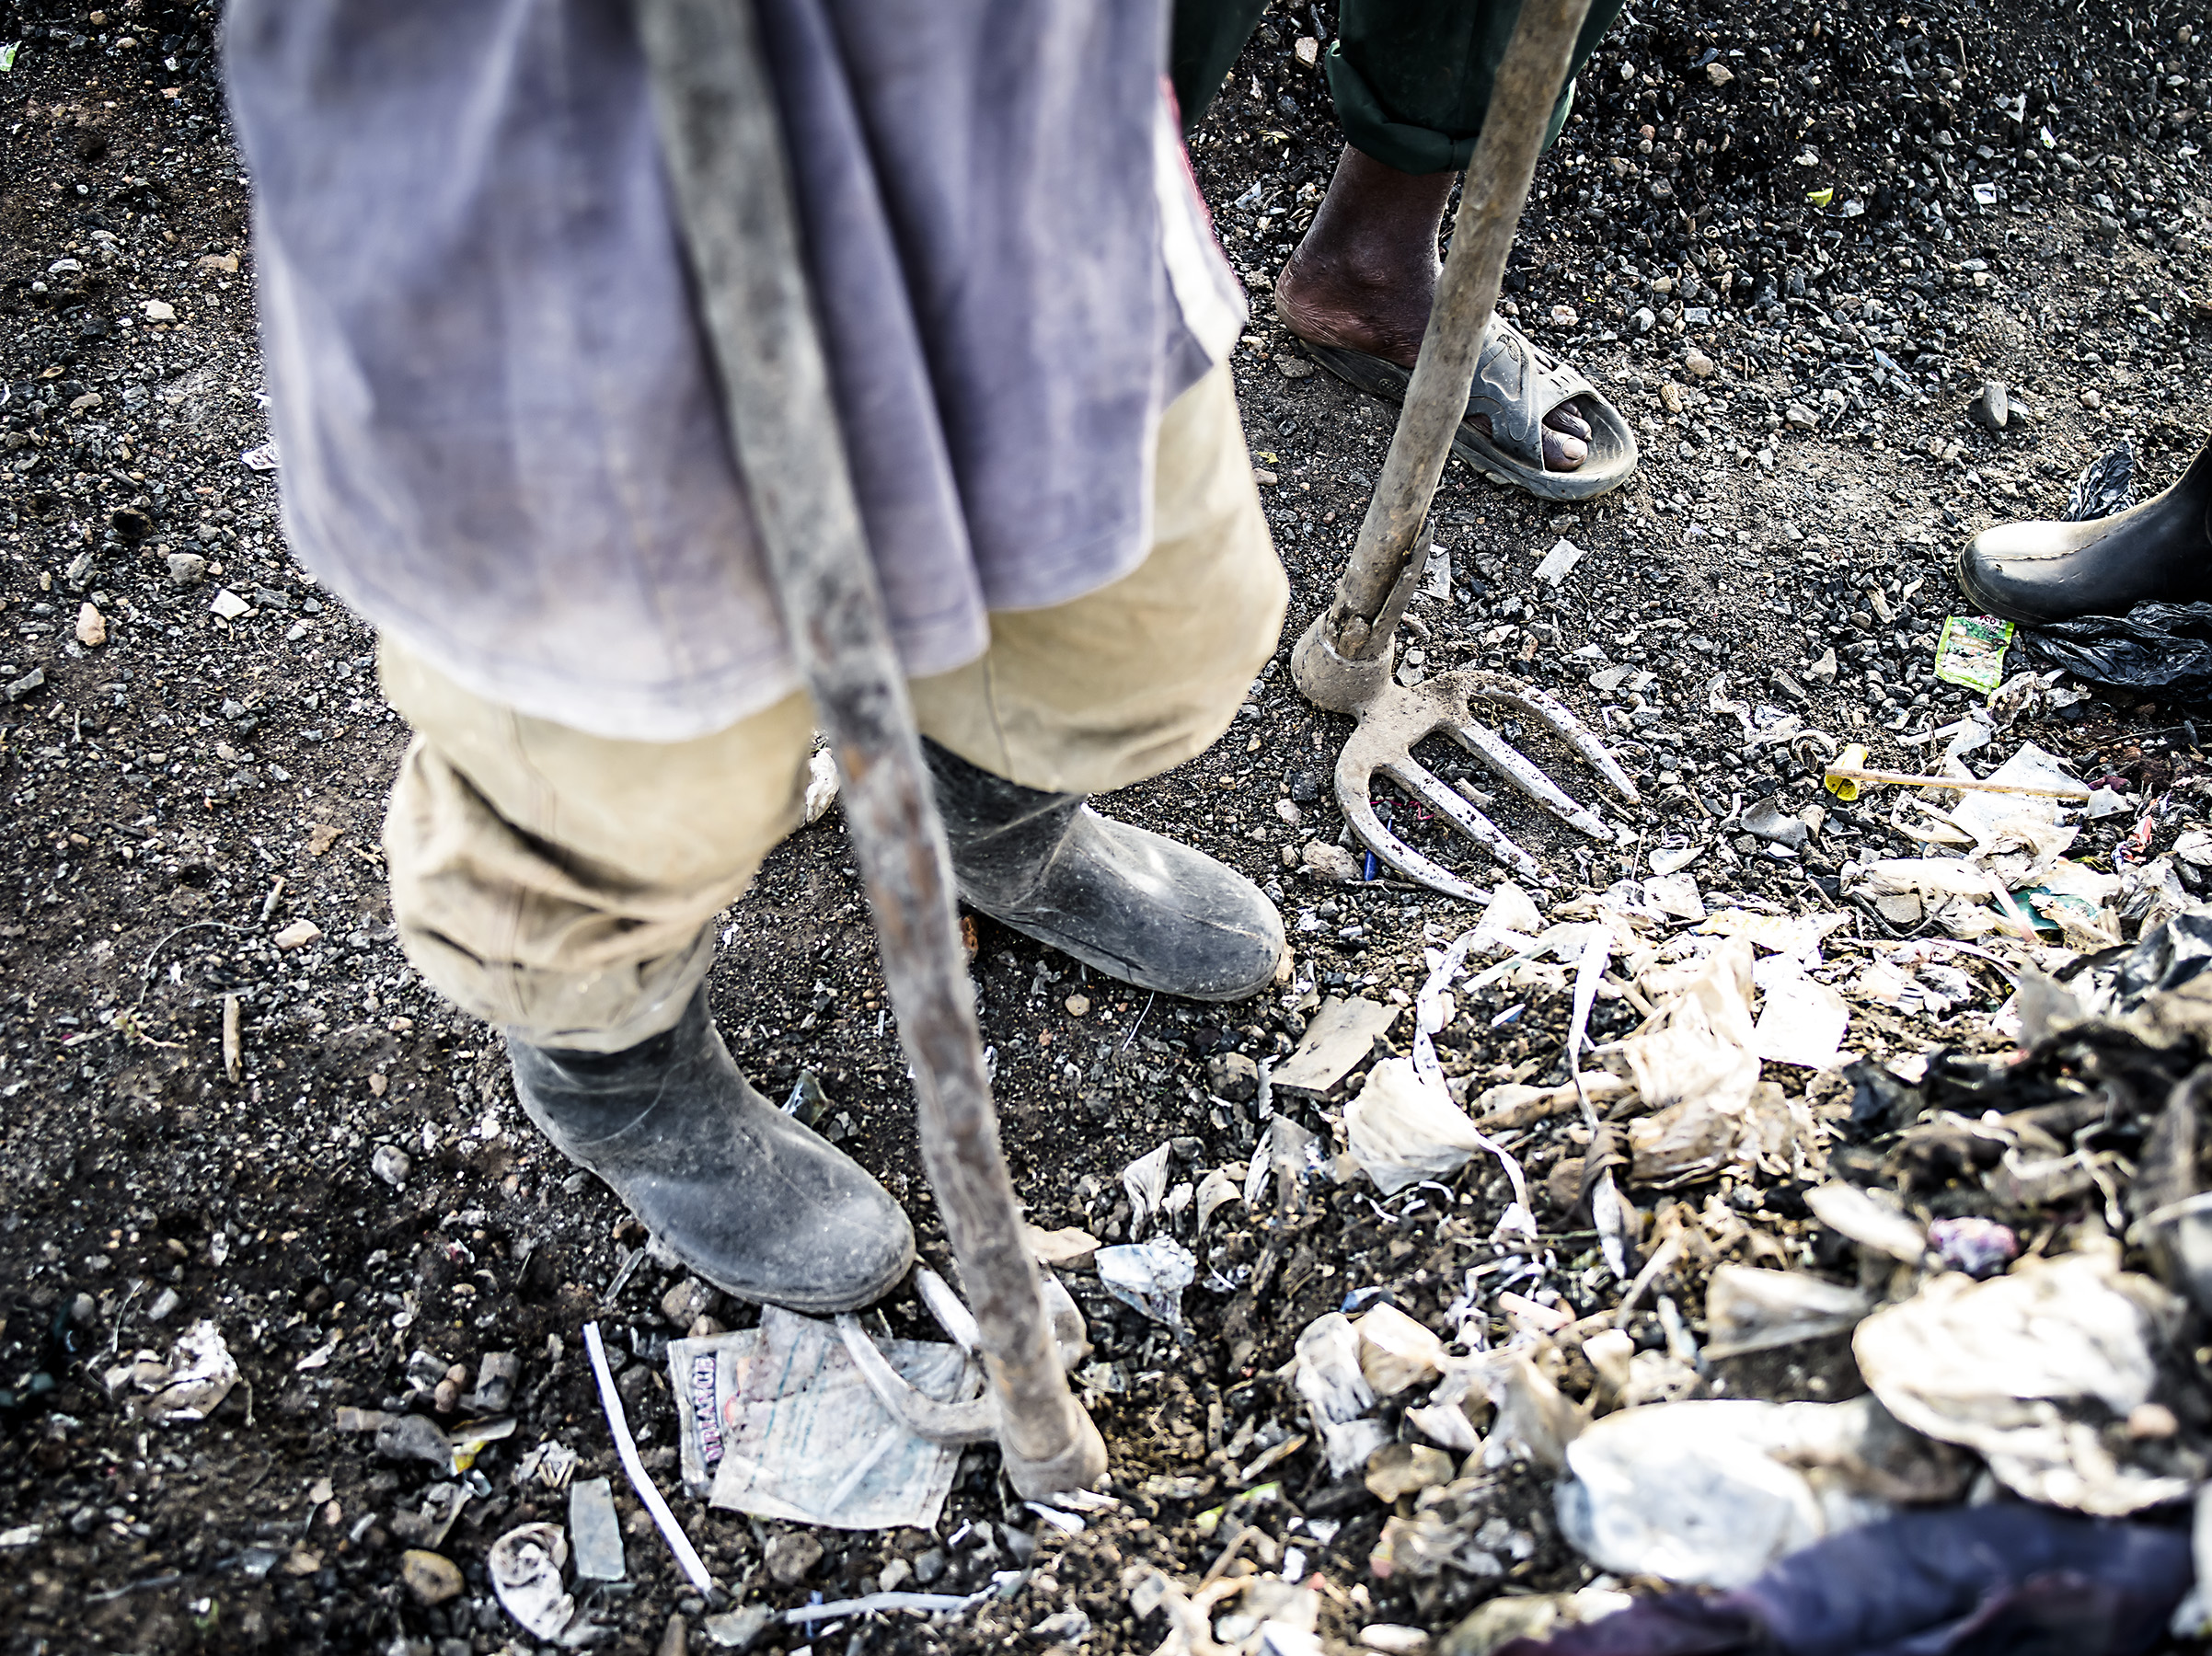 Worker from the Mbarara dumpsite.